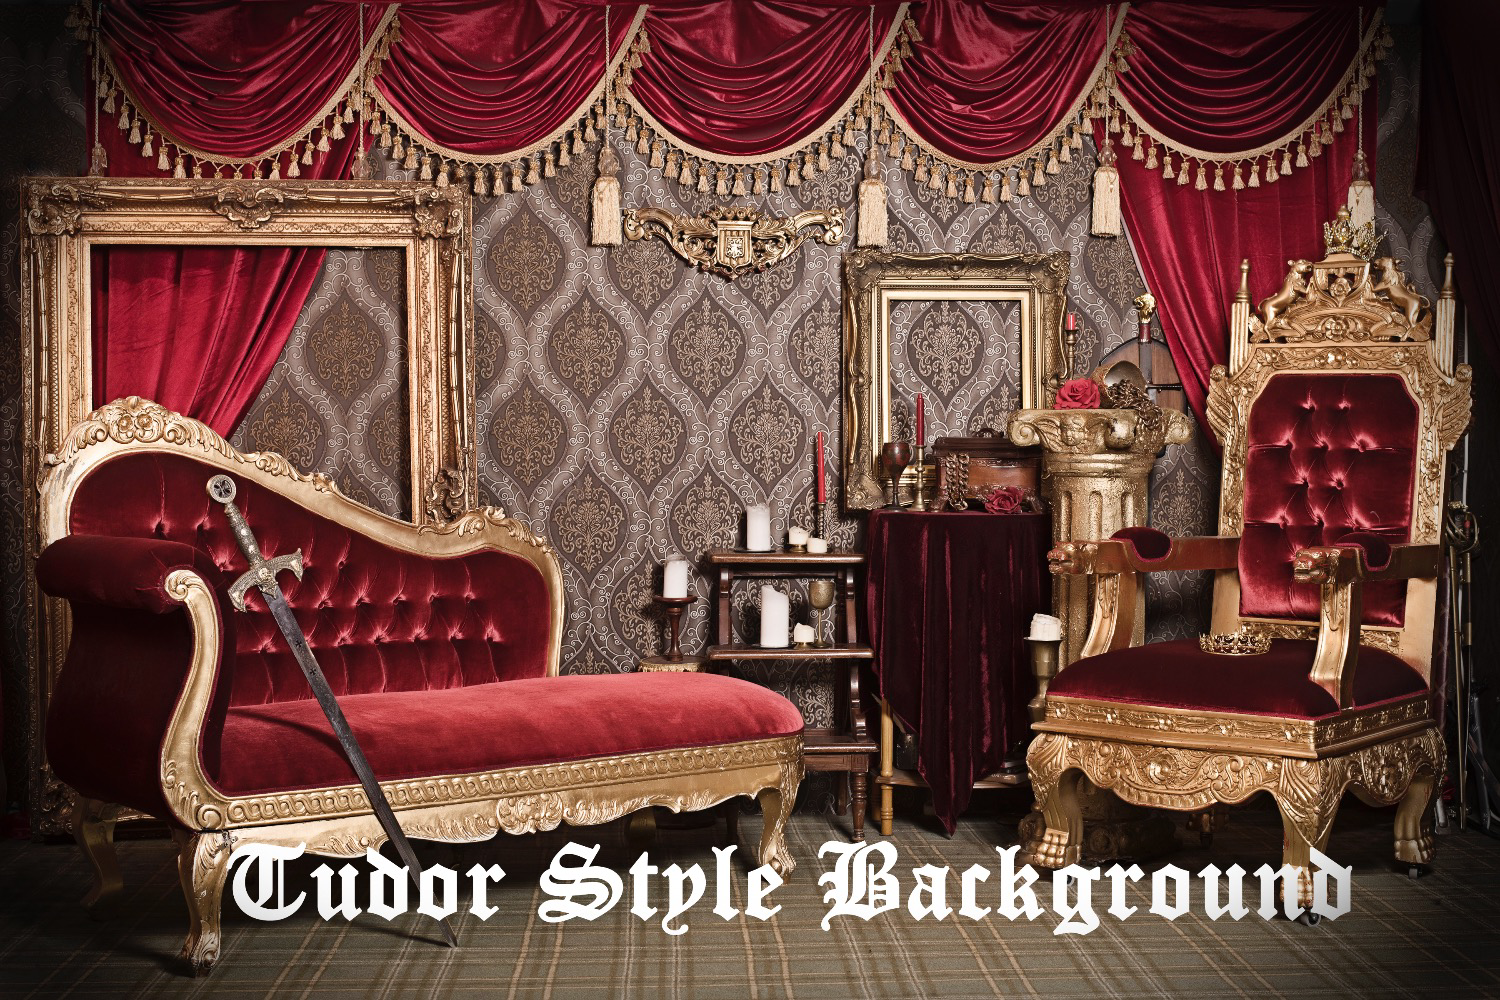 Tudor background